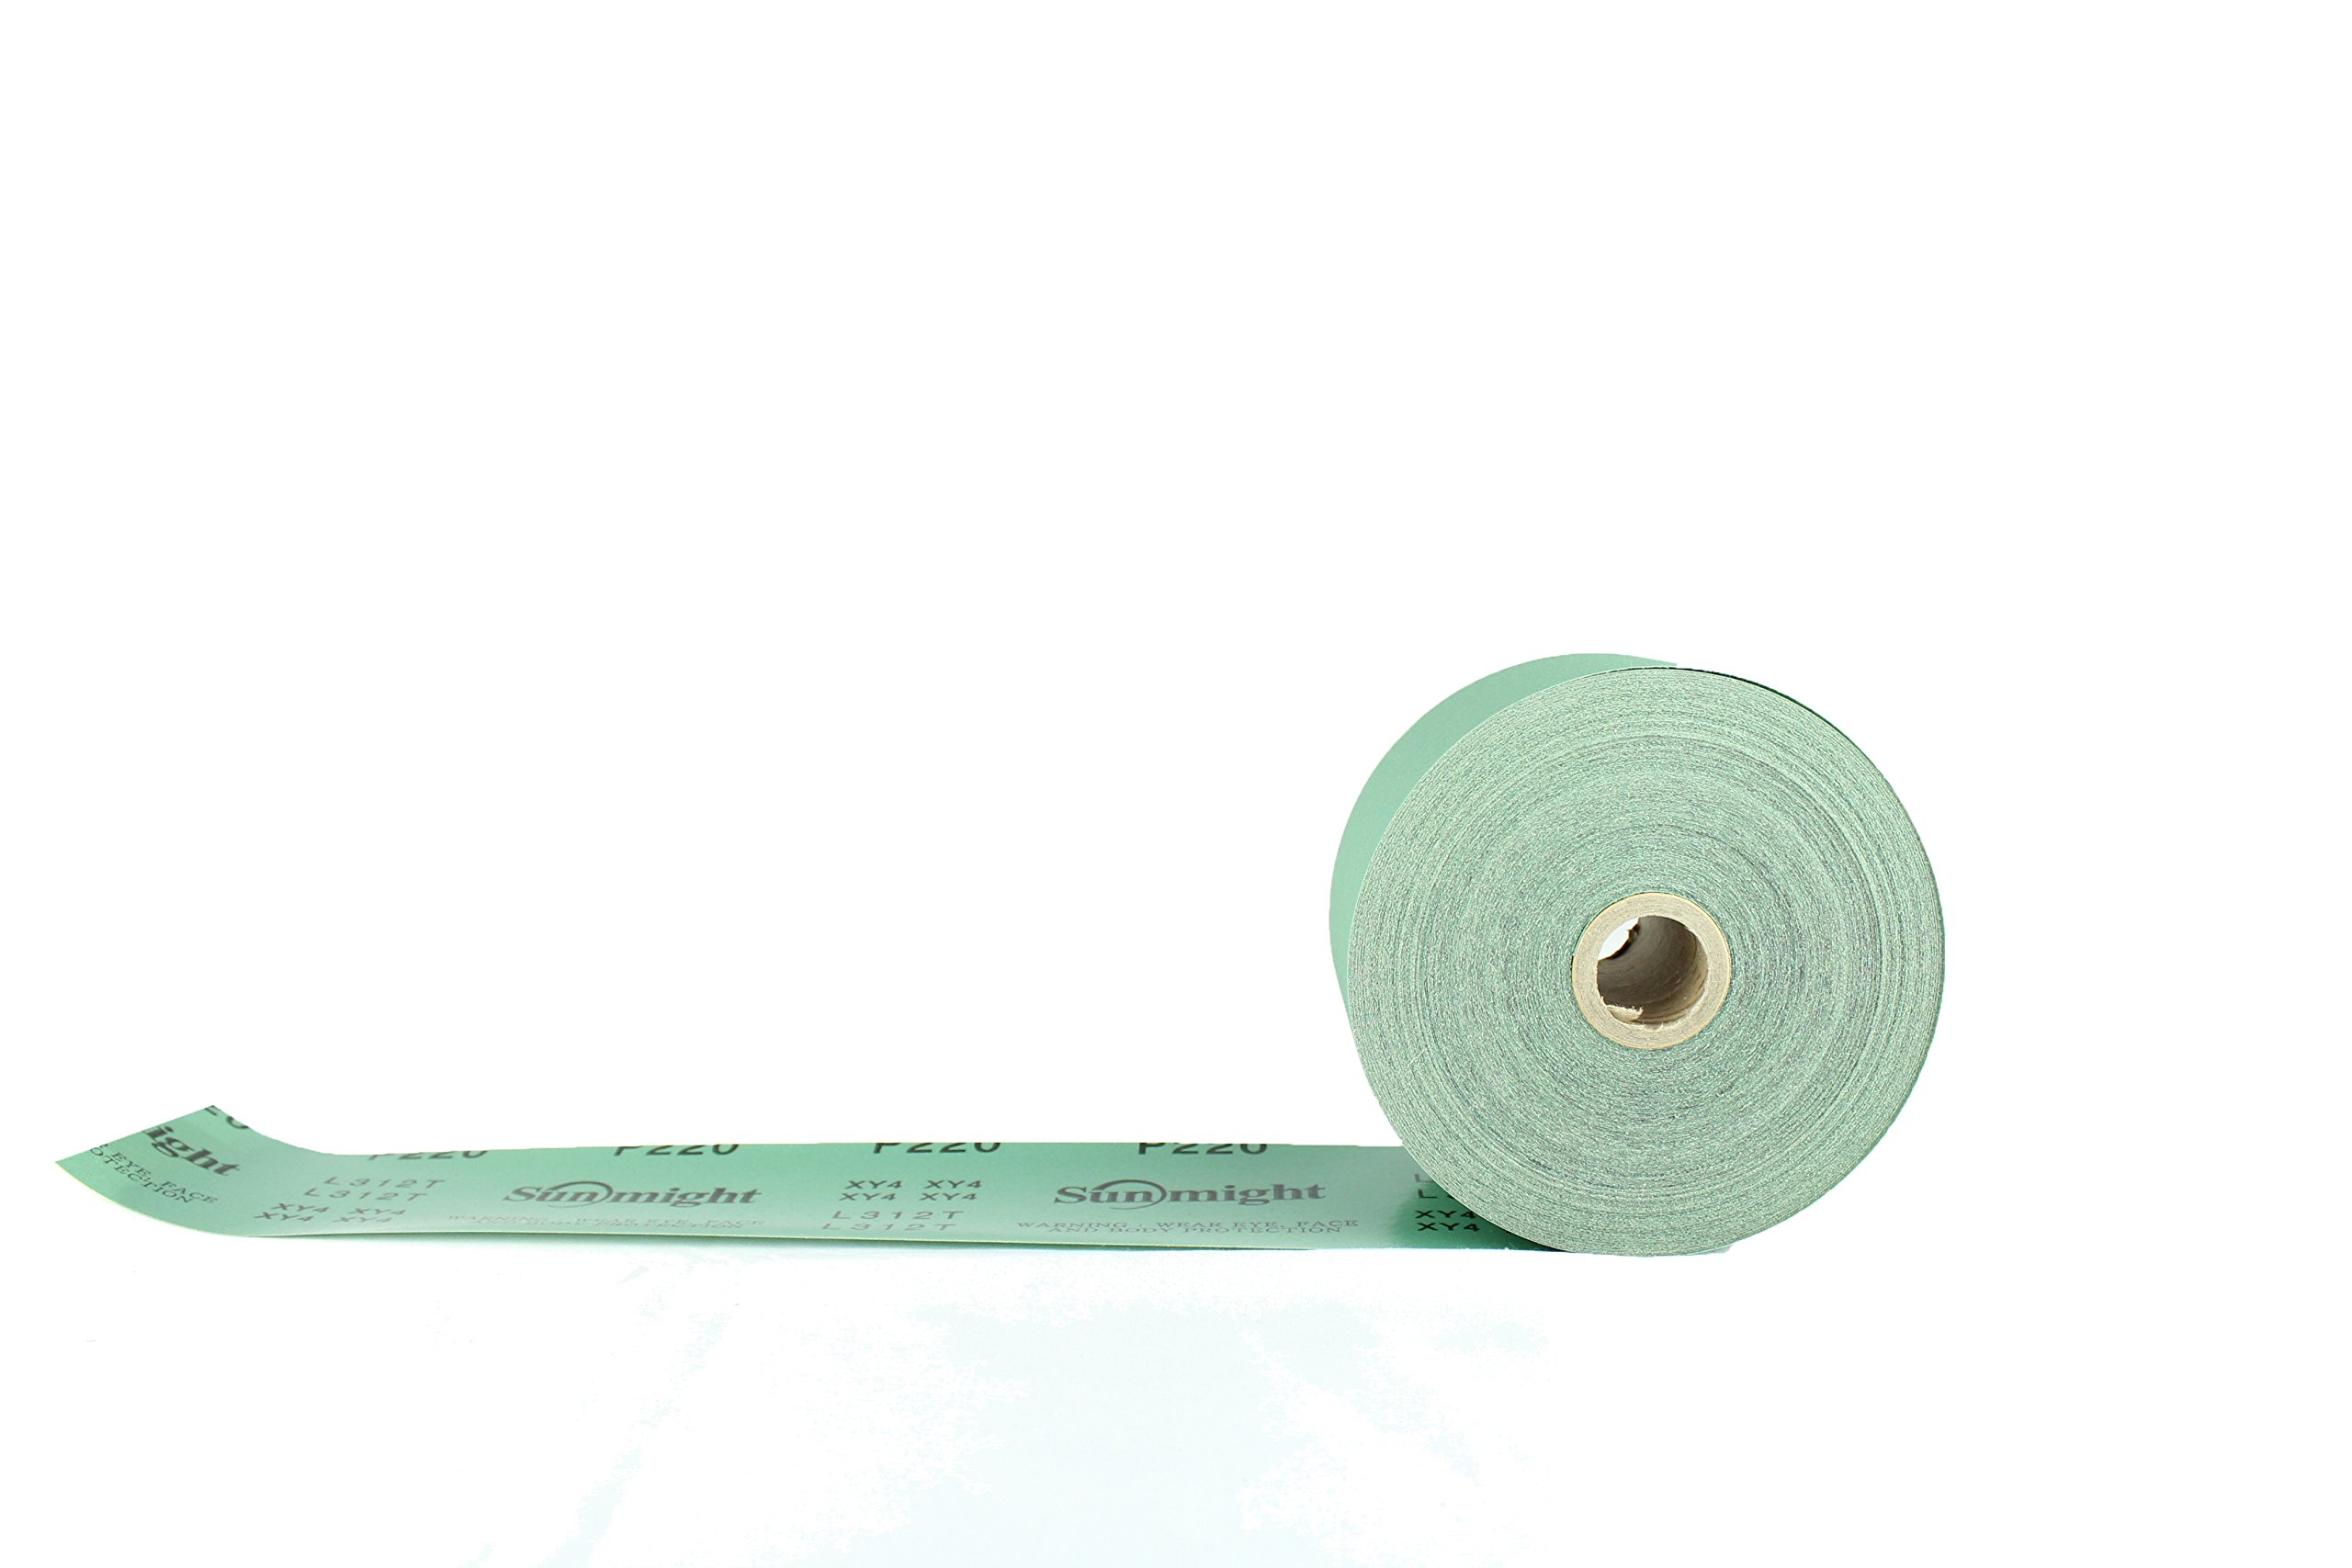 Sunmight 22111 1 Pack 2-3/4'' X 45 yd PSA Sheet Roll (Film Grit 220) by Sunmight (Image #1)